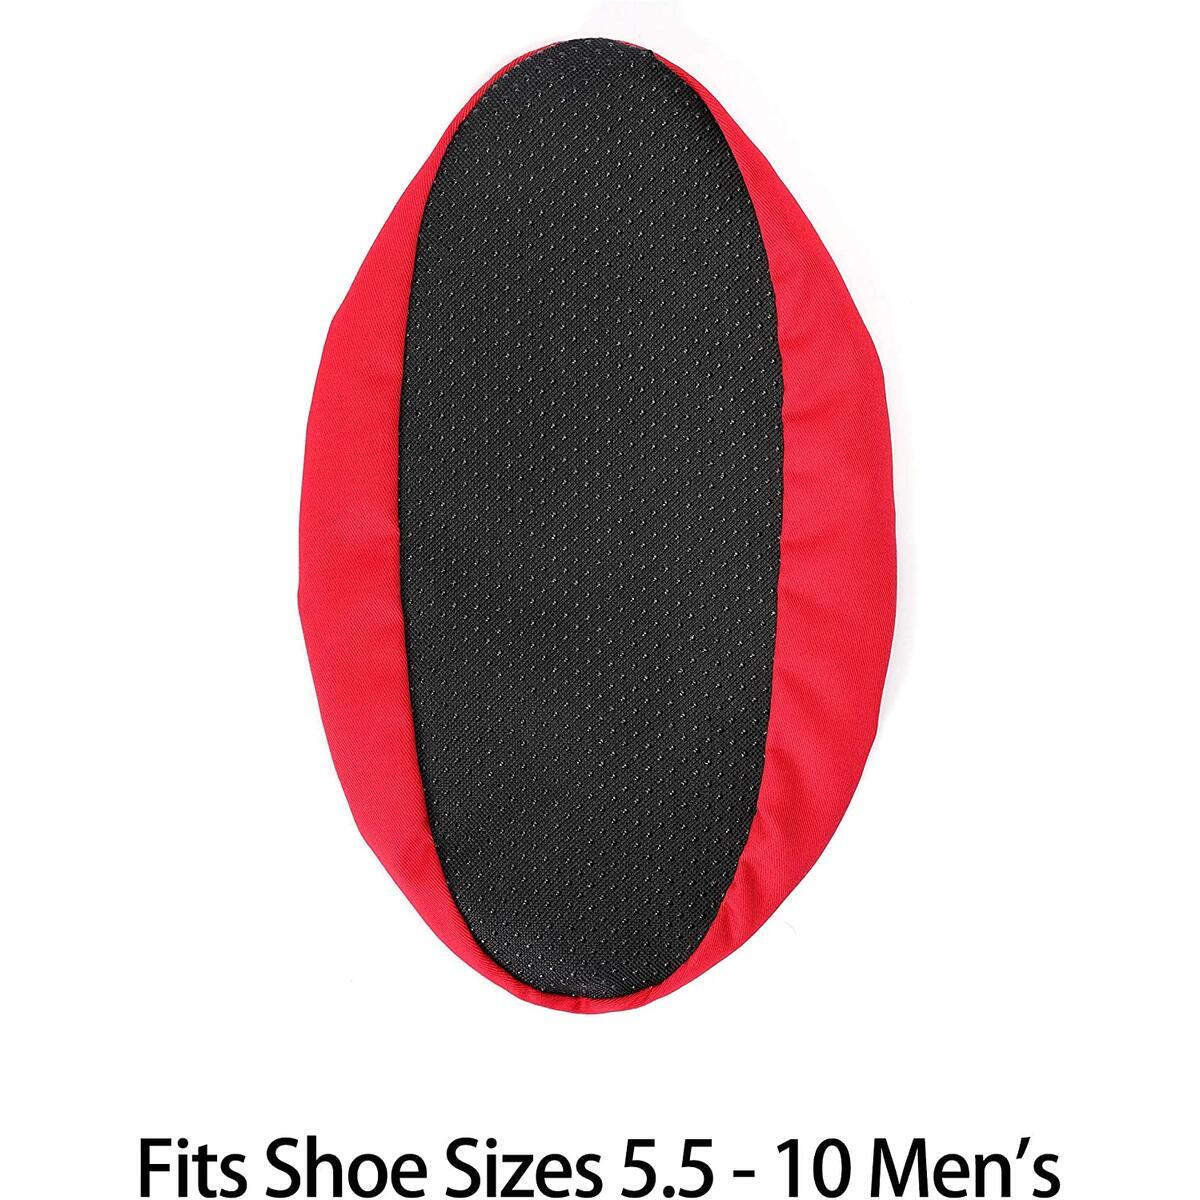 Reusable Shoe Covers - 2 Pairs